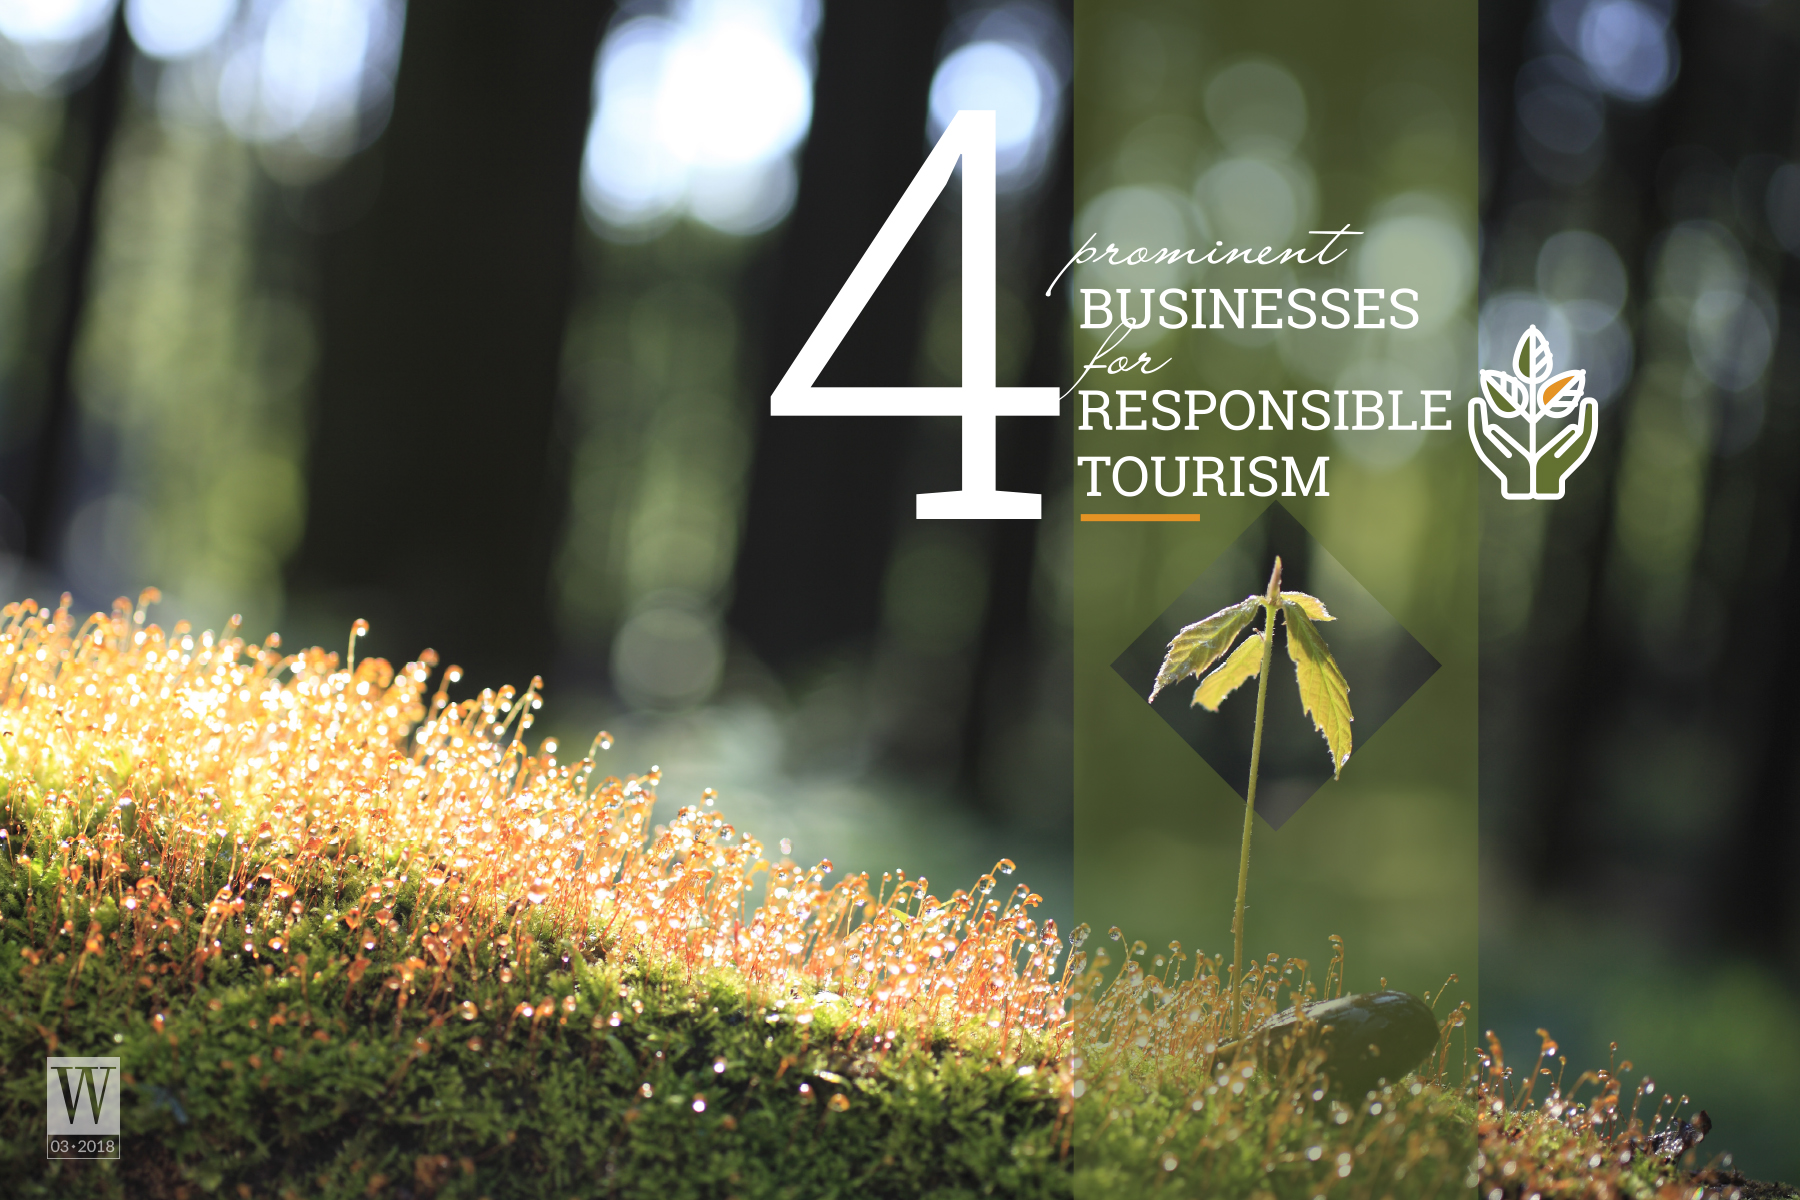 Wanderlust Tips Magazine | 4 prominent businesses for responsible tourism